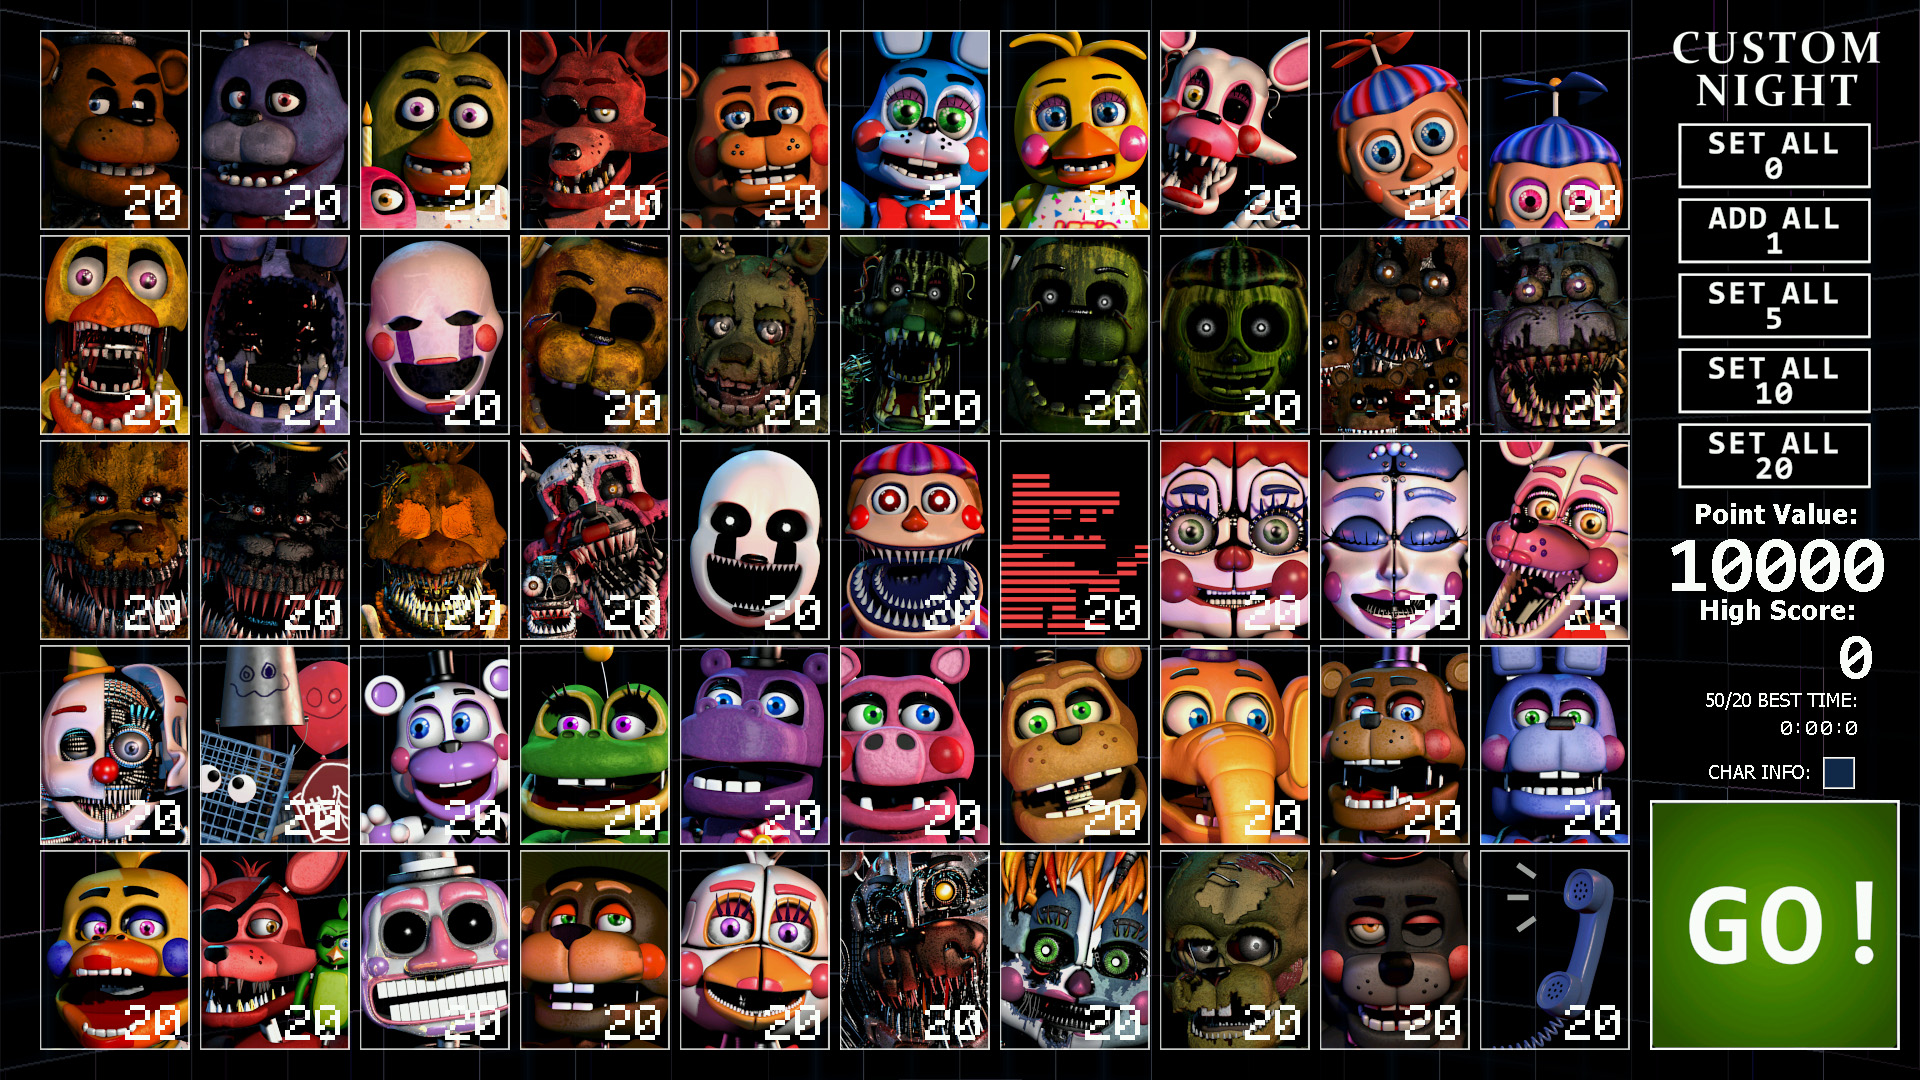 Ultimate Custom Night: How To Earn 5000 Points Fast | FNaF 3